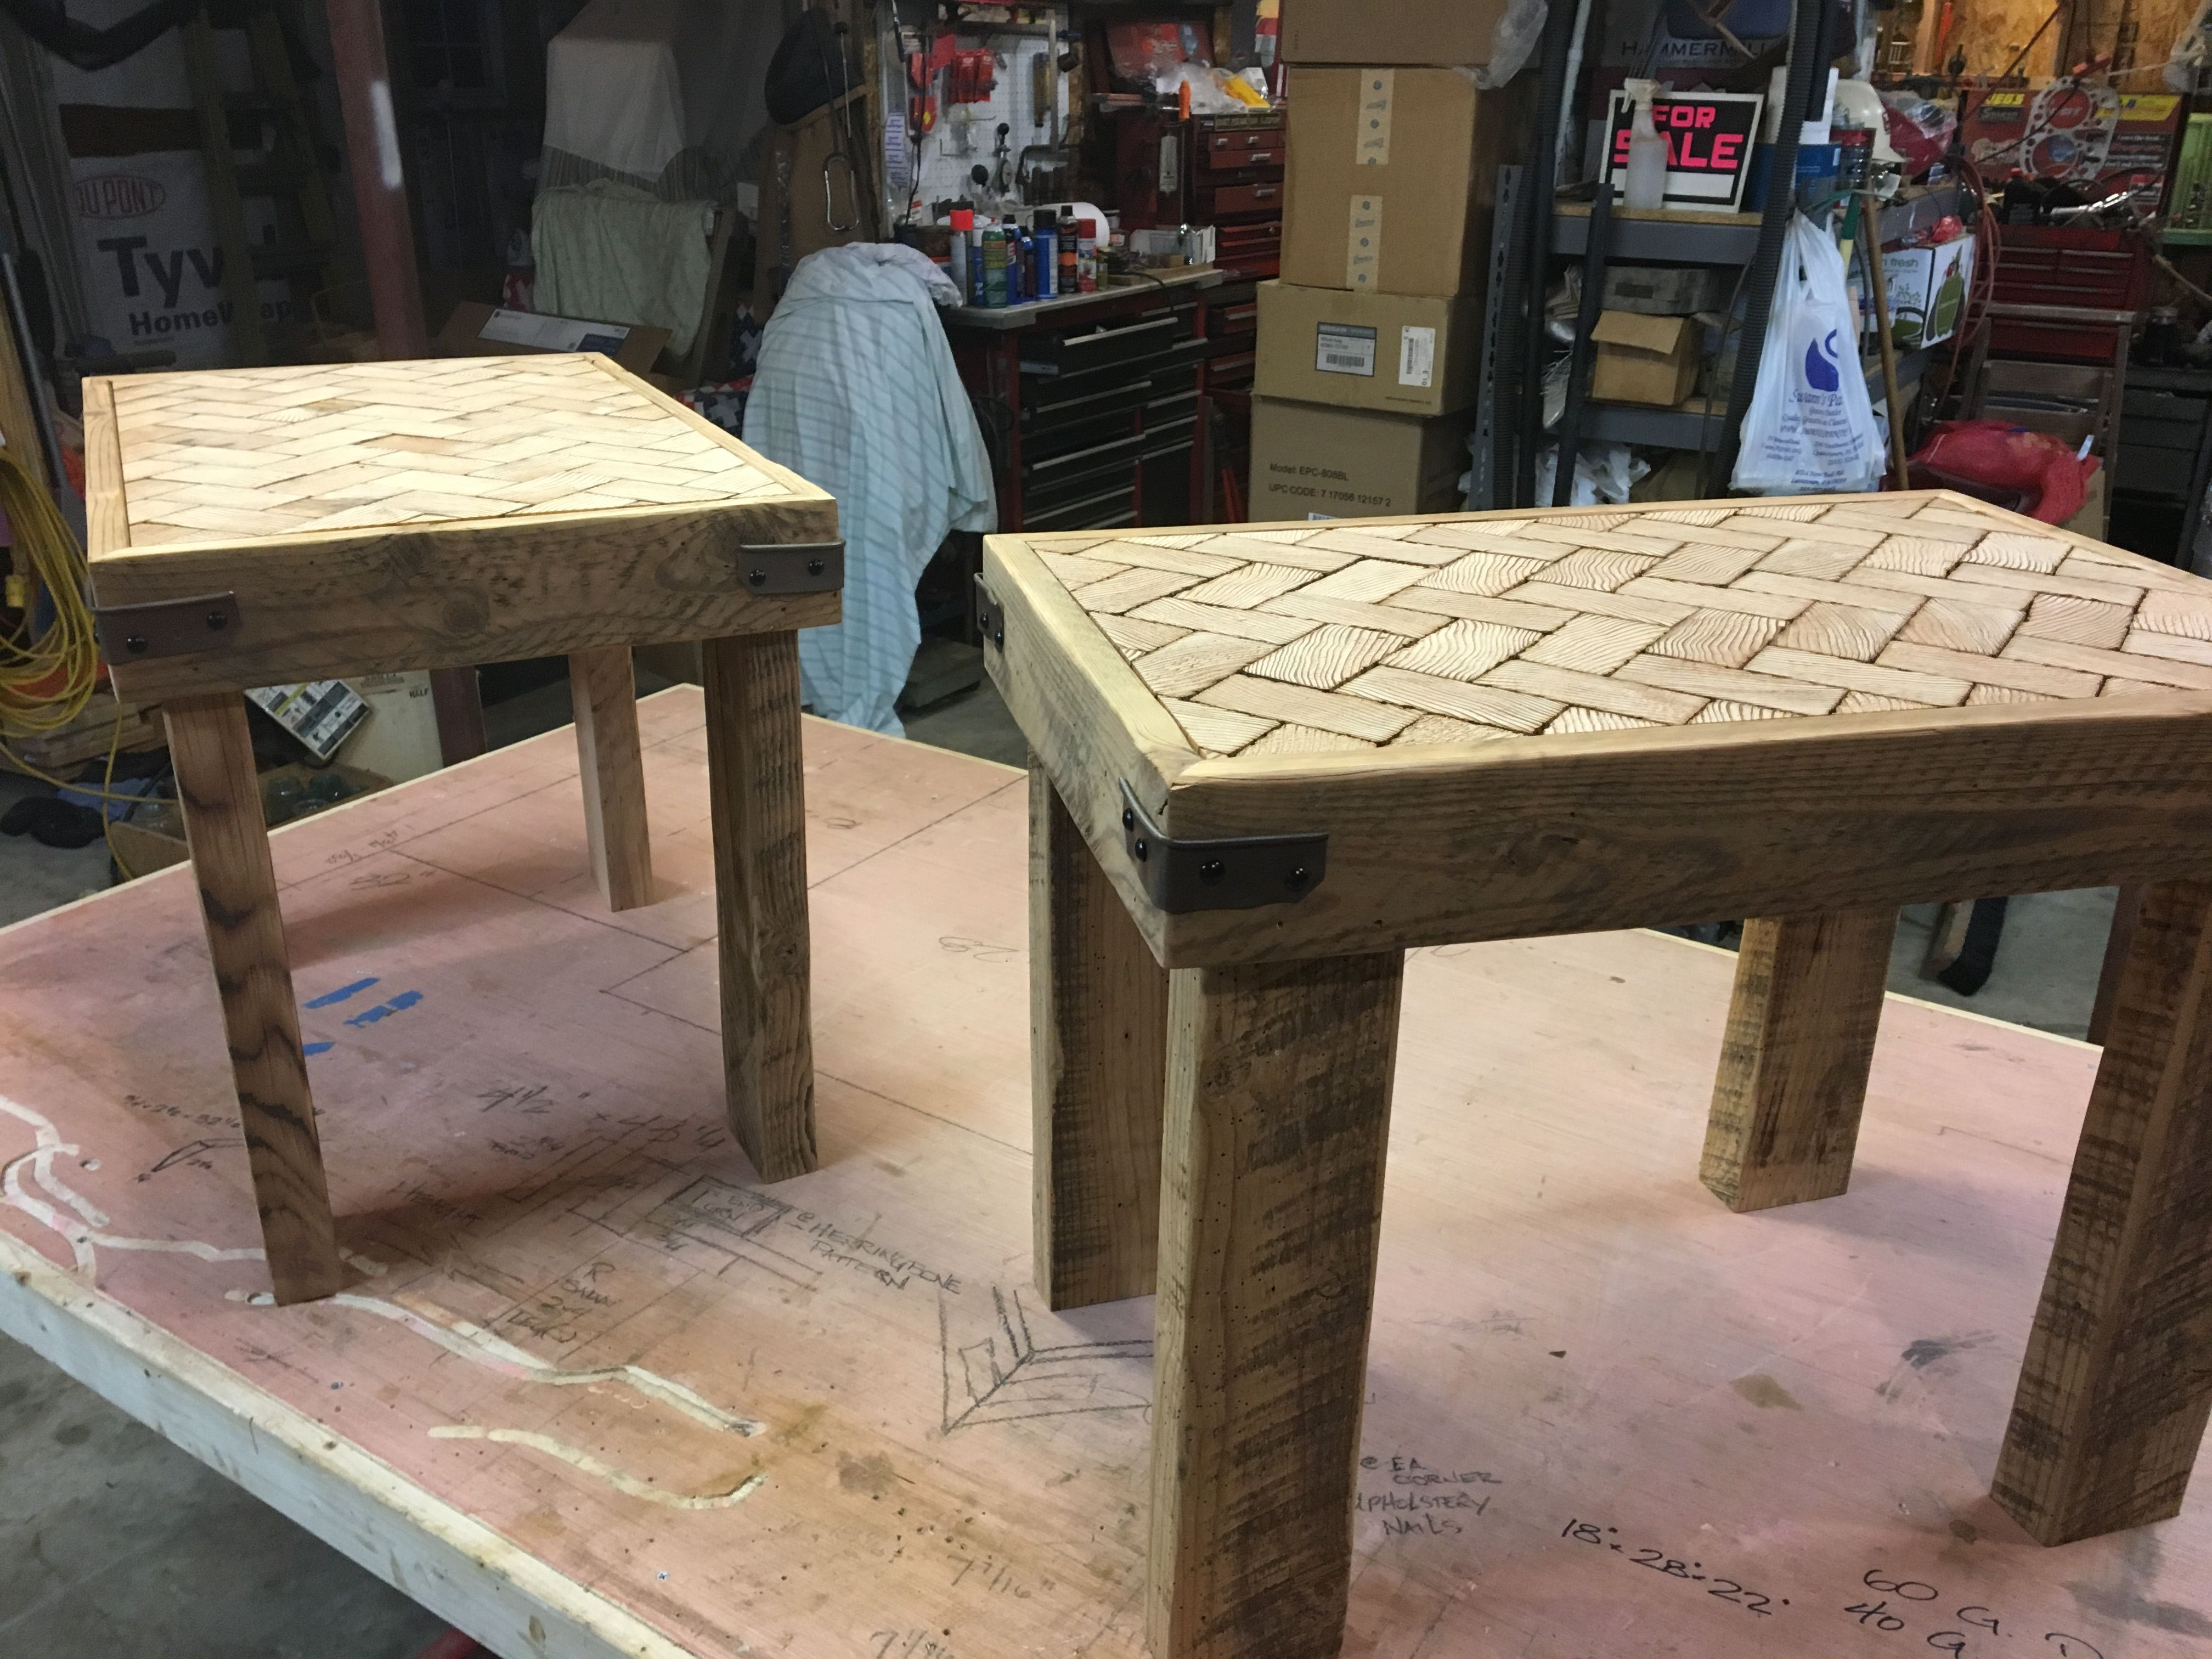 Barn Wood End Grain End Tables Made From Rough Sawn Lumber Barn Wood Built By Stradling Woodworking Rough Sawn Lumber Barn Wood End Tables